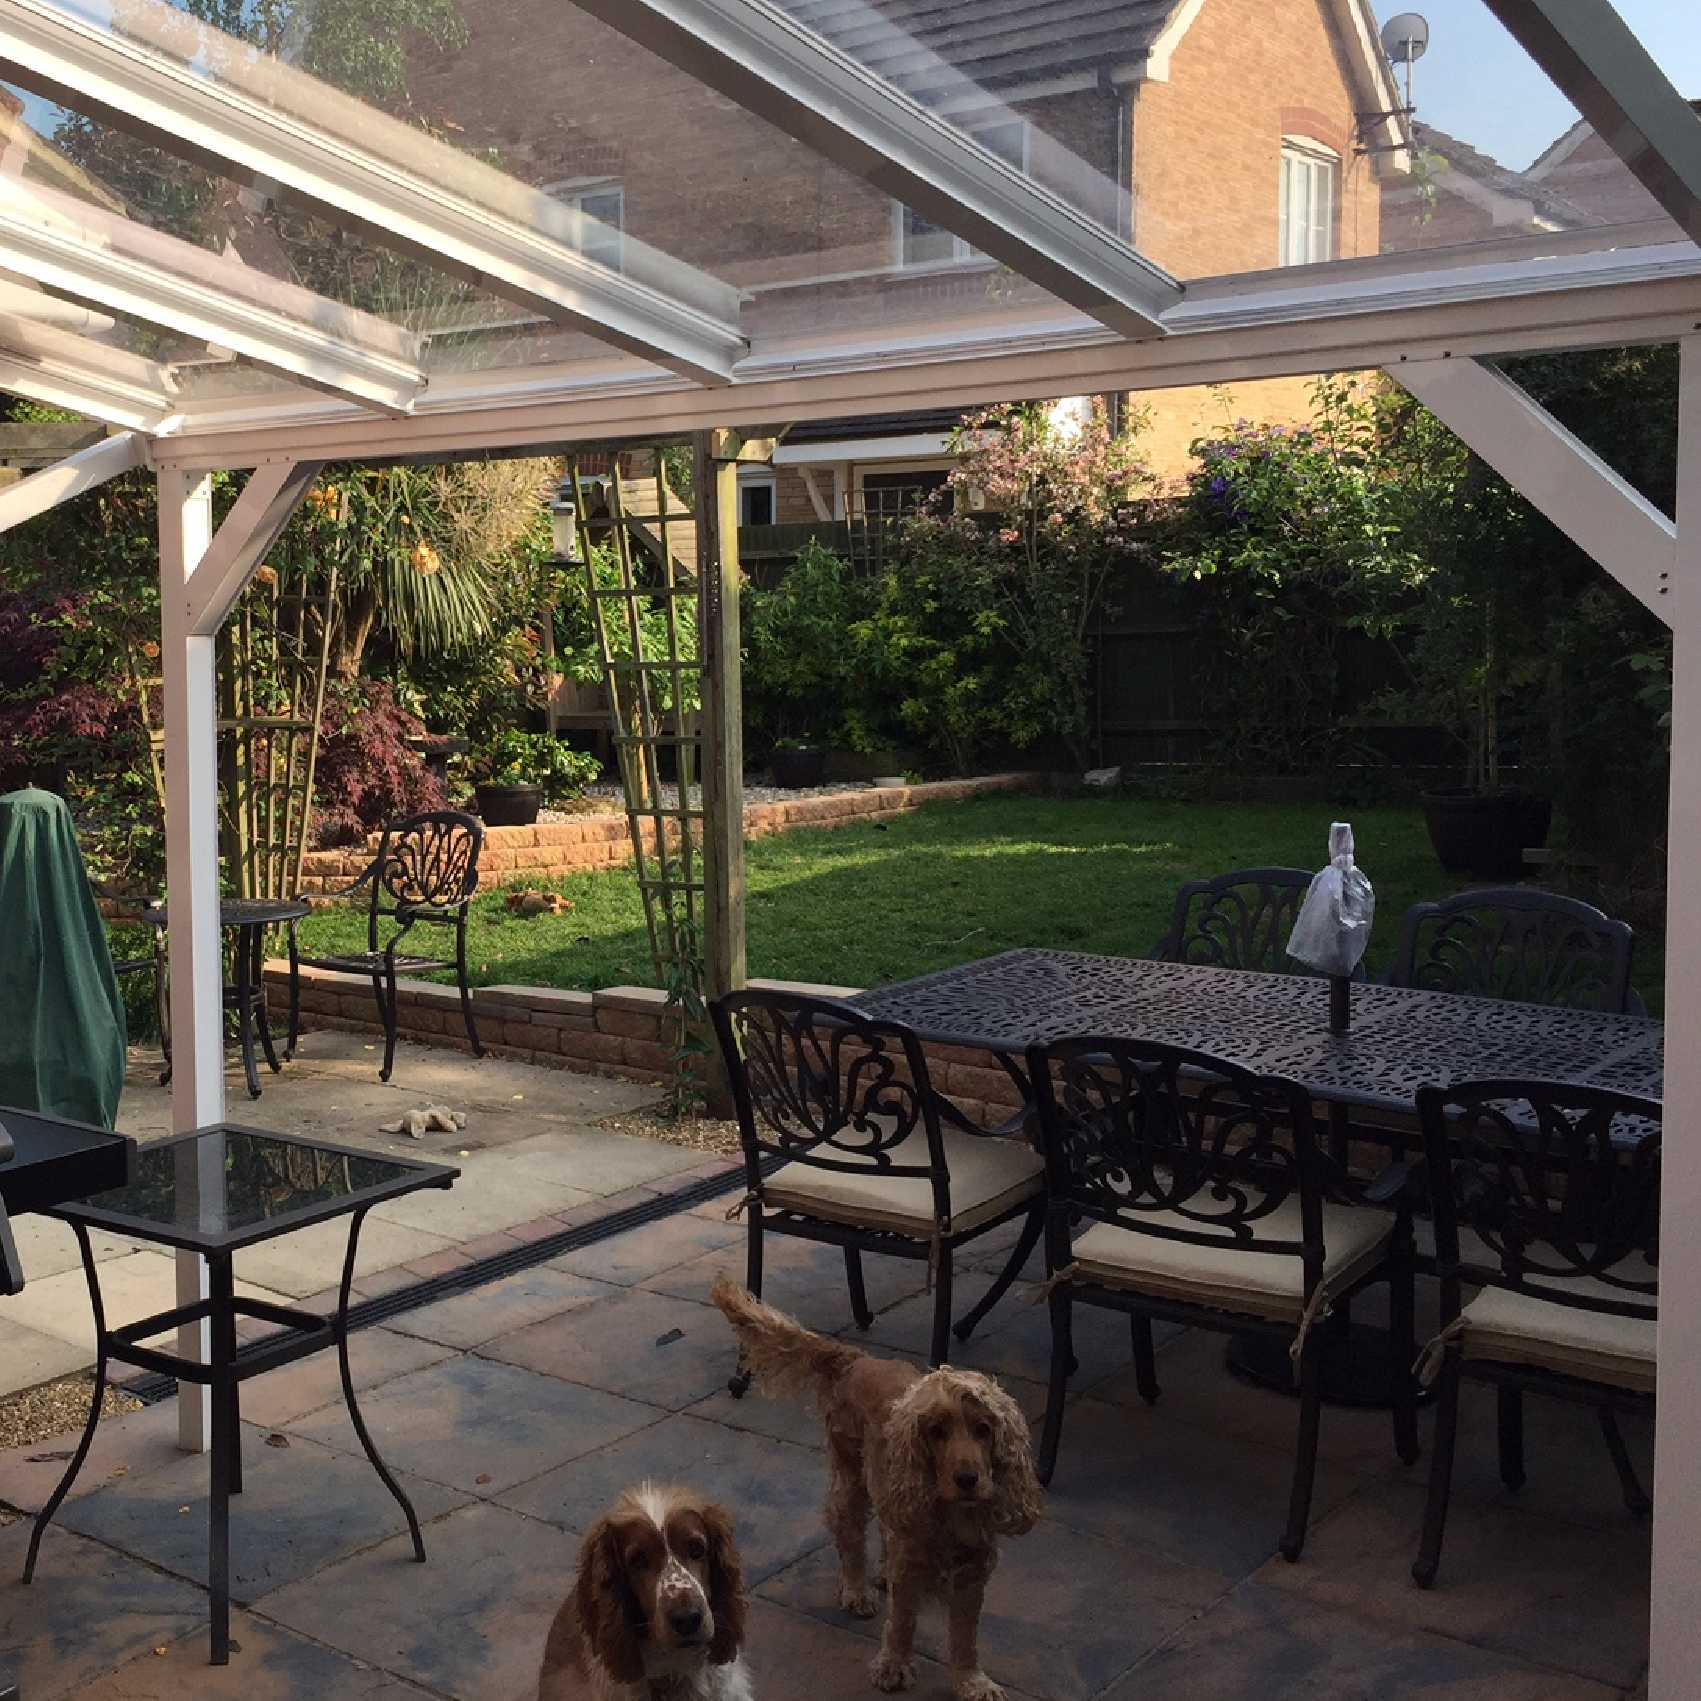 Affordable Omega Smart Lean-To Canopy with 6mm Glass Clear Plate Polycarbonate Glazing - 4.9m (W) x 2.5m (P), (3) Supporting Posts